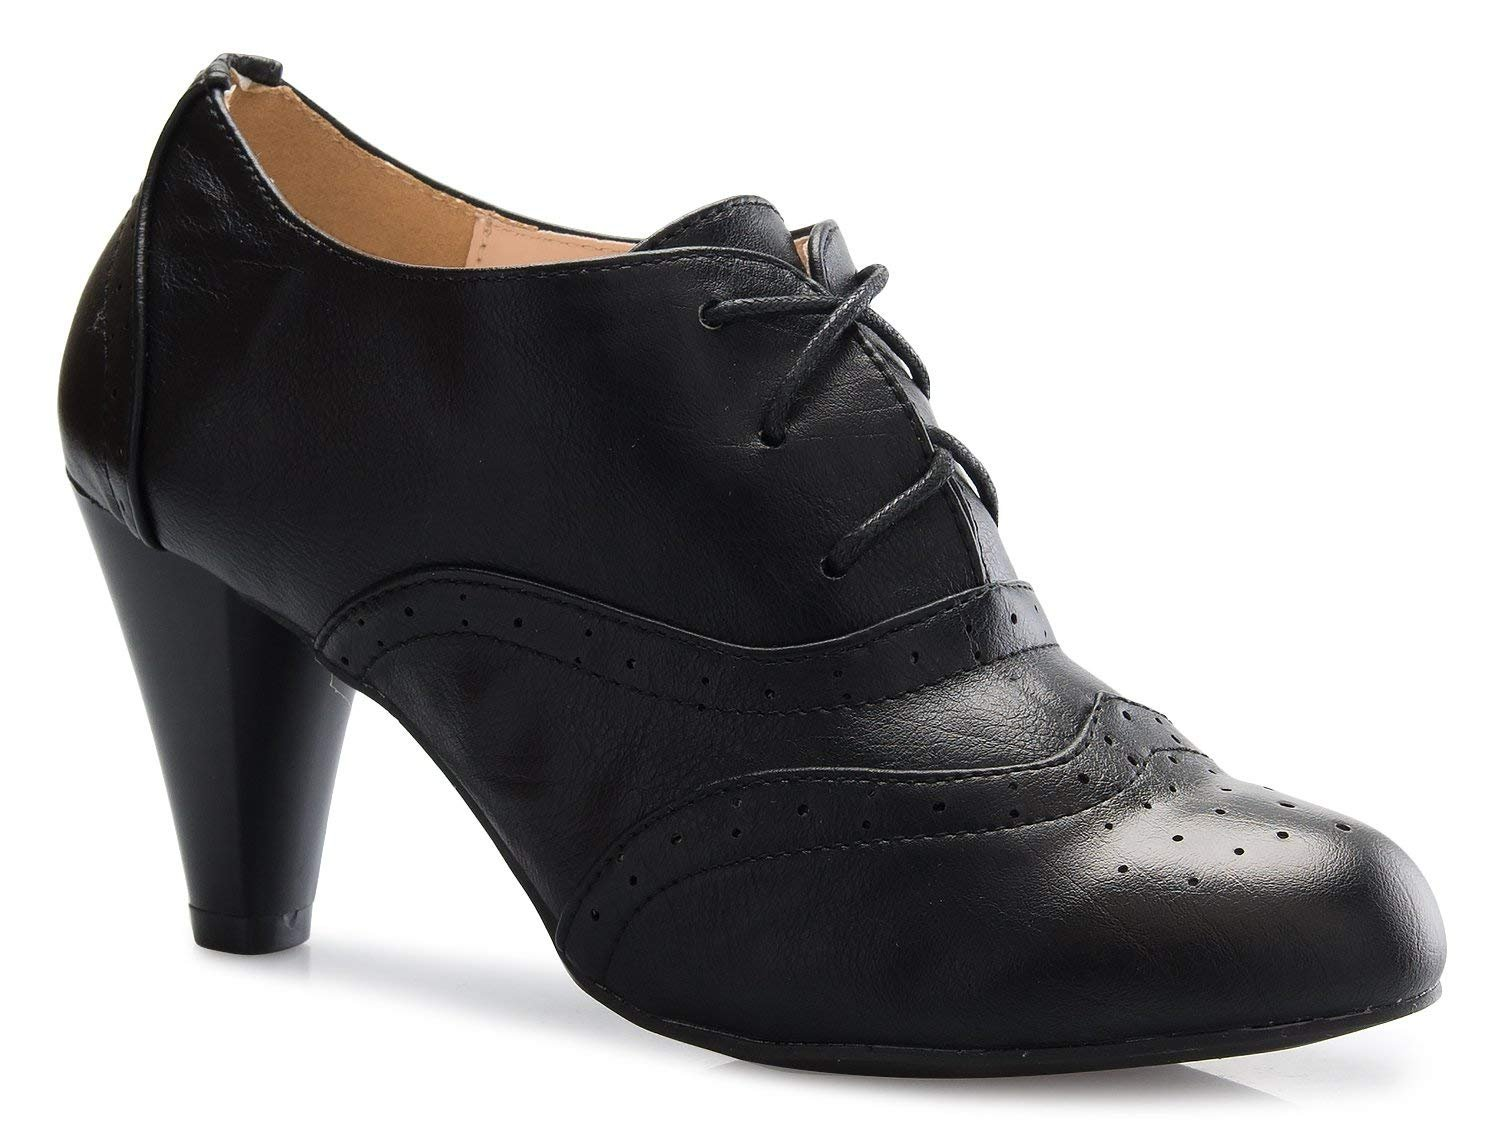 Women's Oxford Shoes Classic Fashion Chunky Heel Bootie Mid-Heel Lace Up Ankle Boots Mary Jane Pumps Black 9